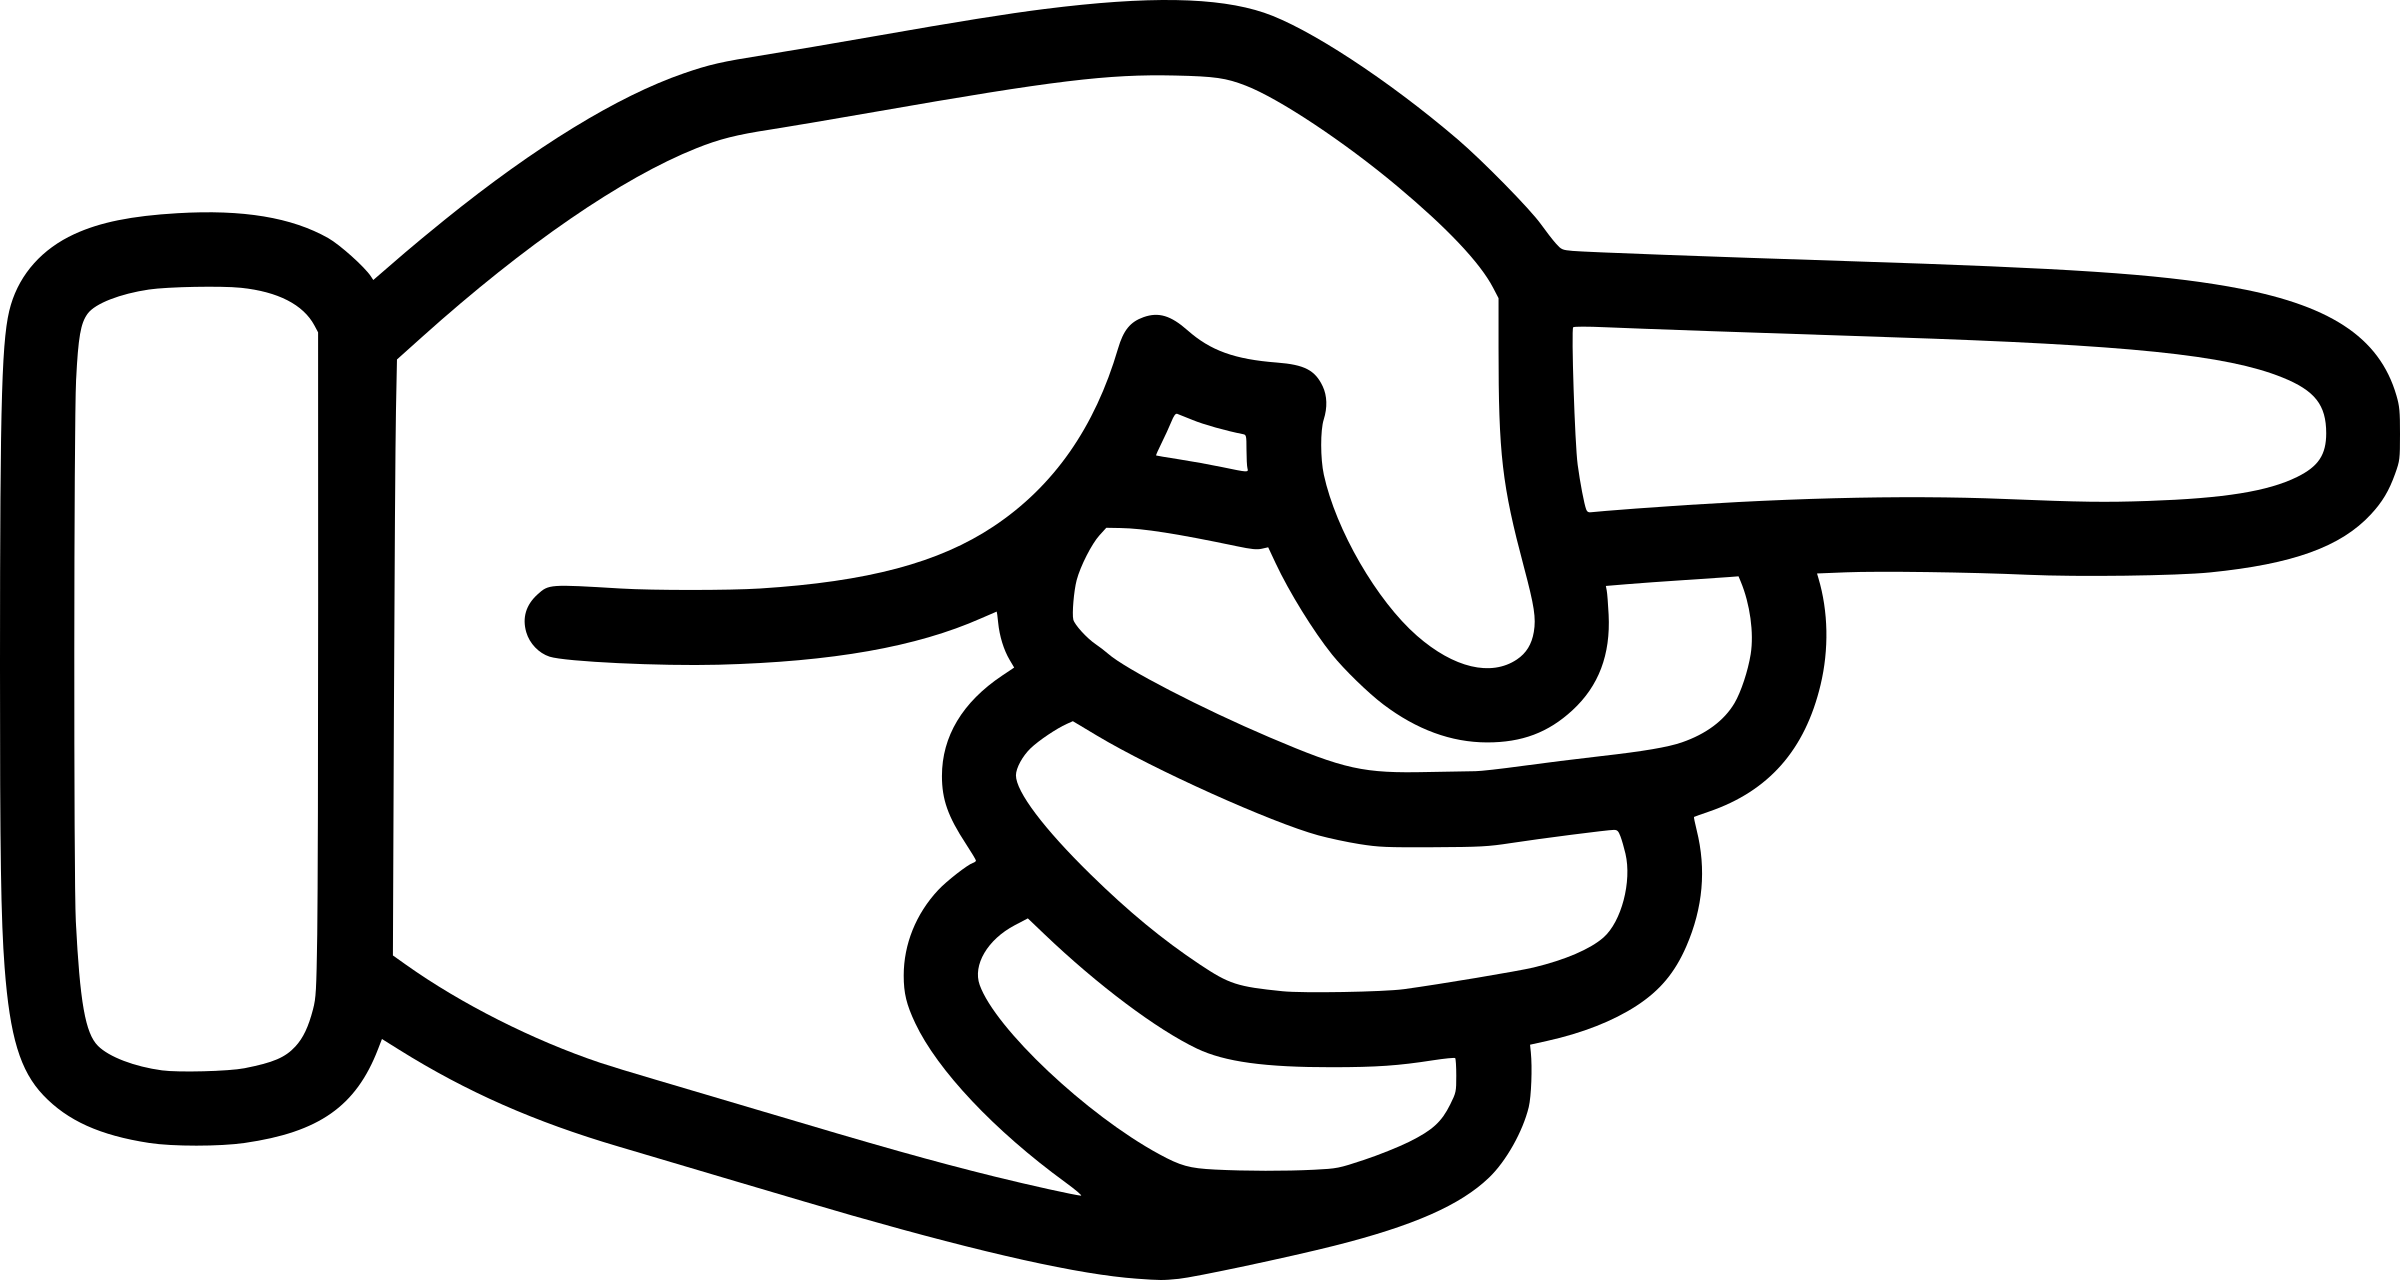 Pointing finger images clipart images gallery for free.